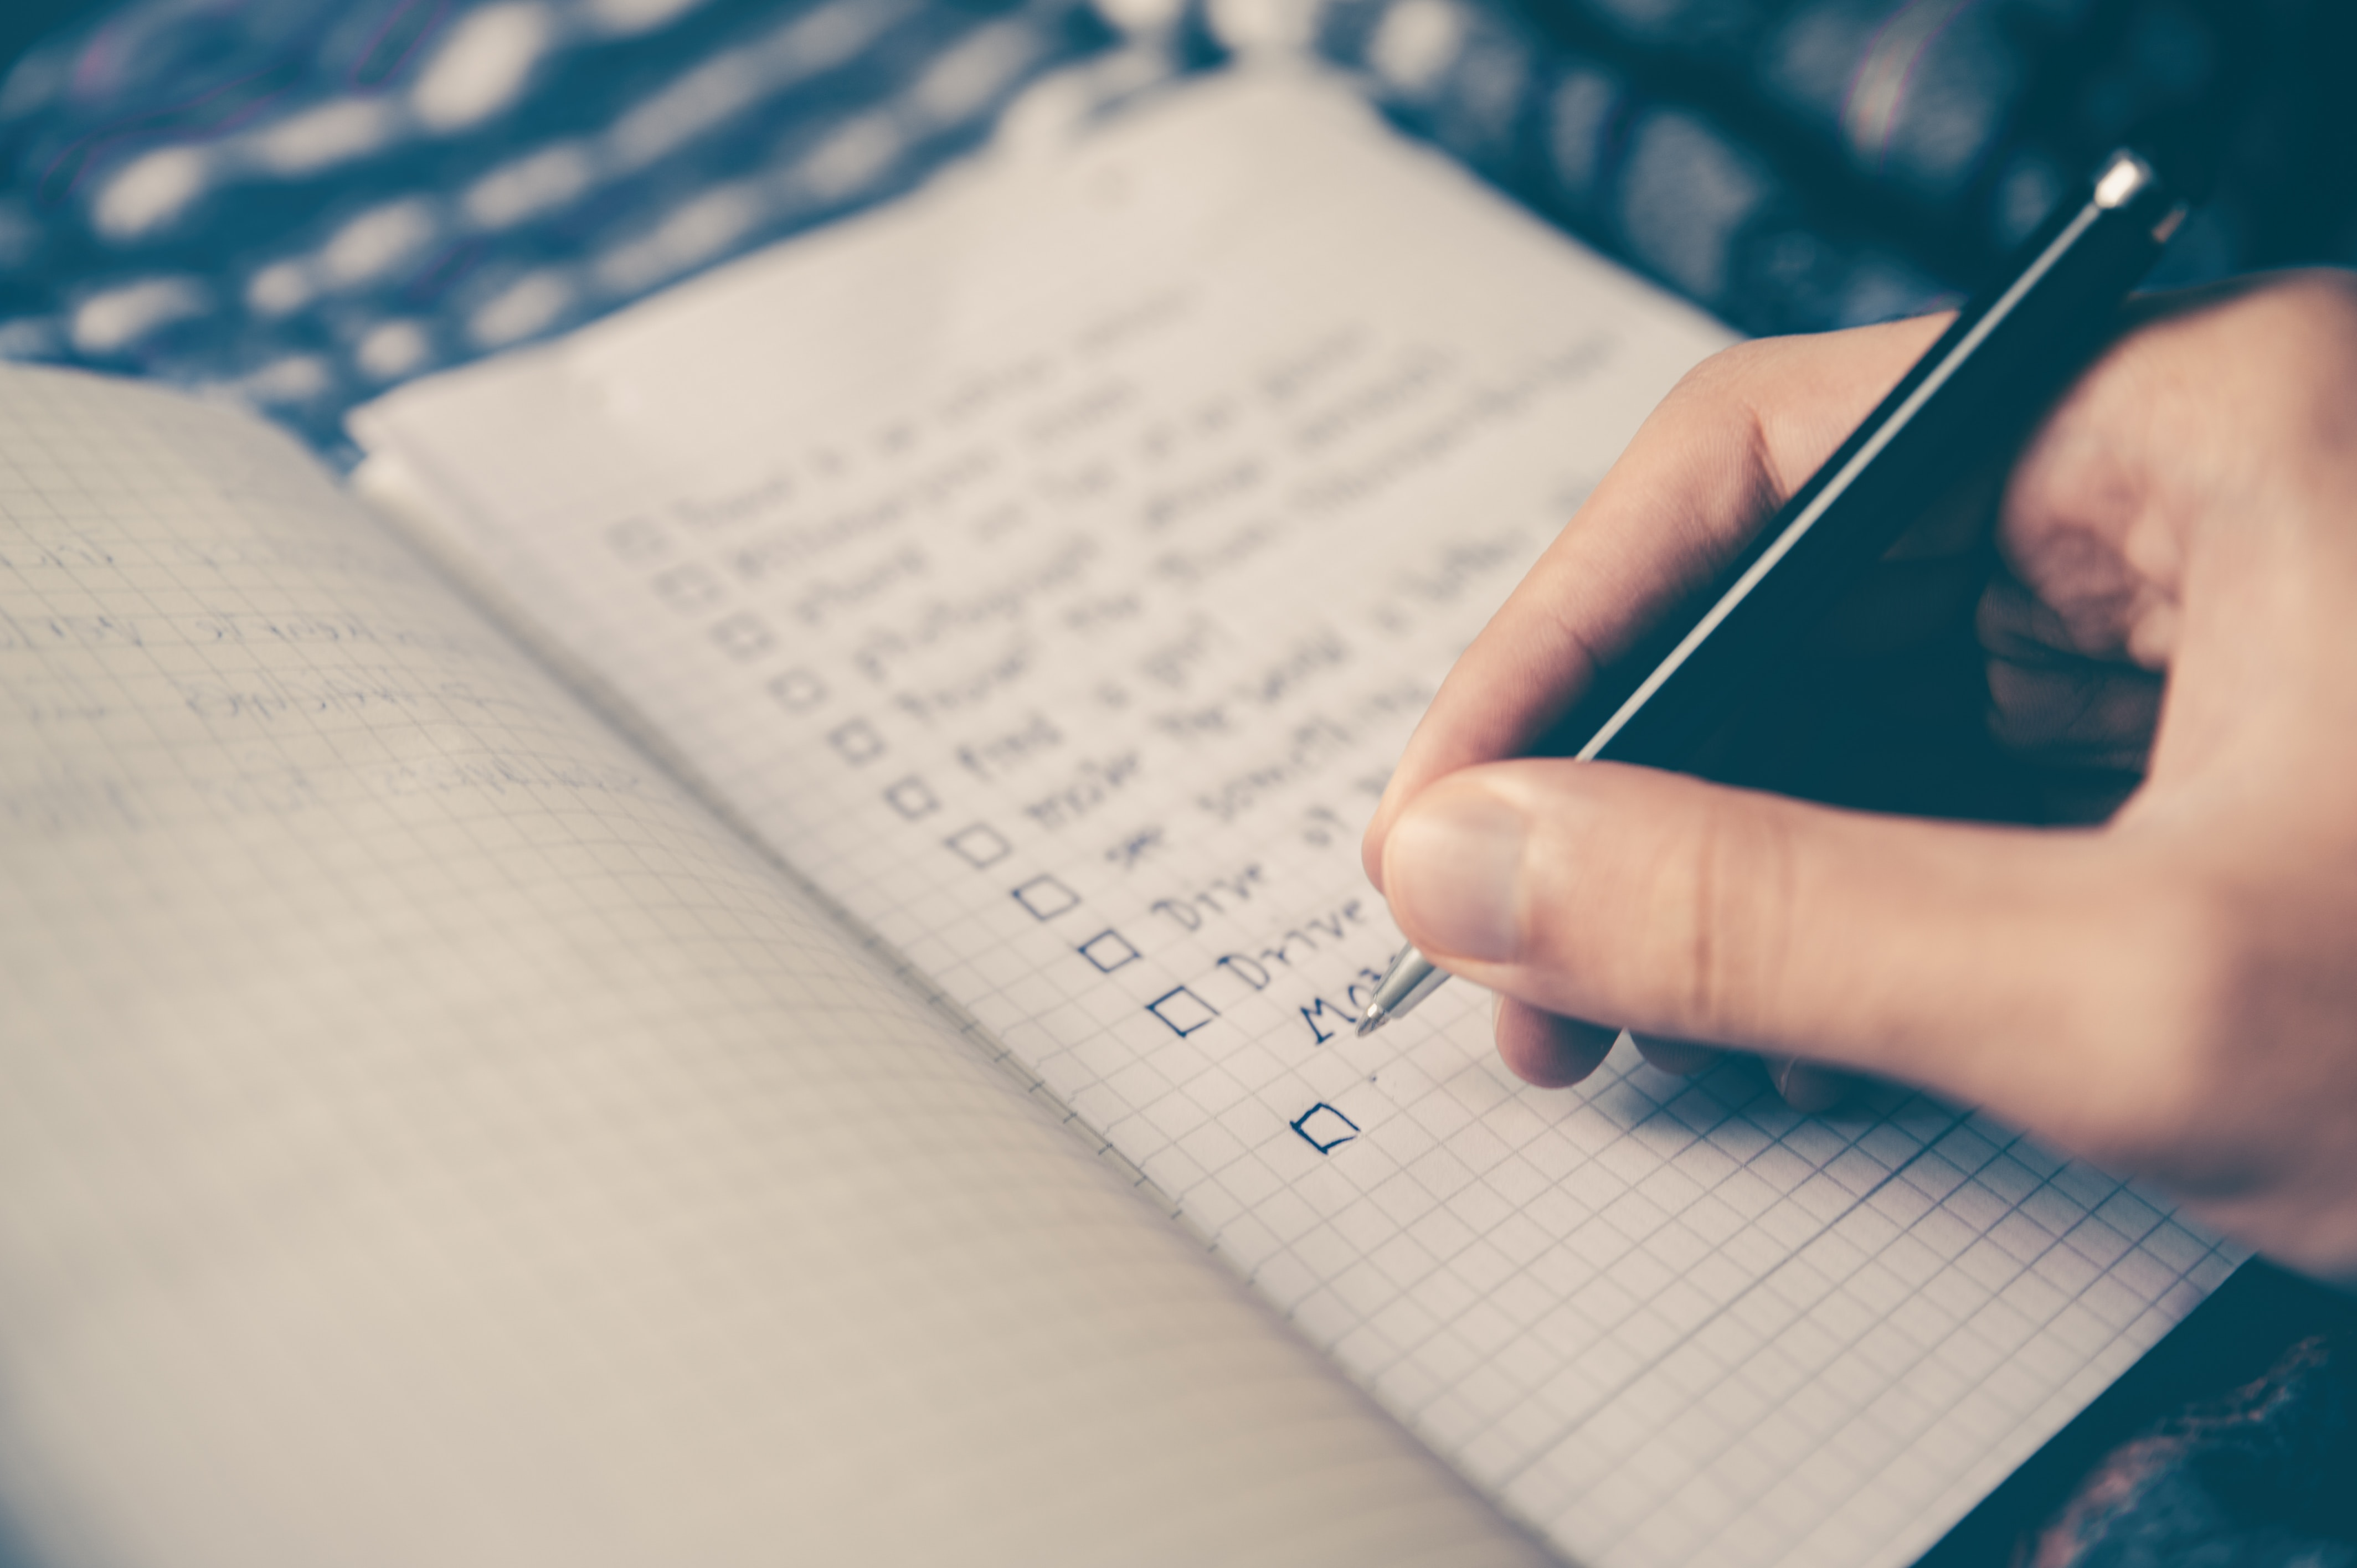 How to stay productive by planning your day